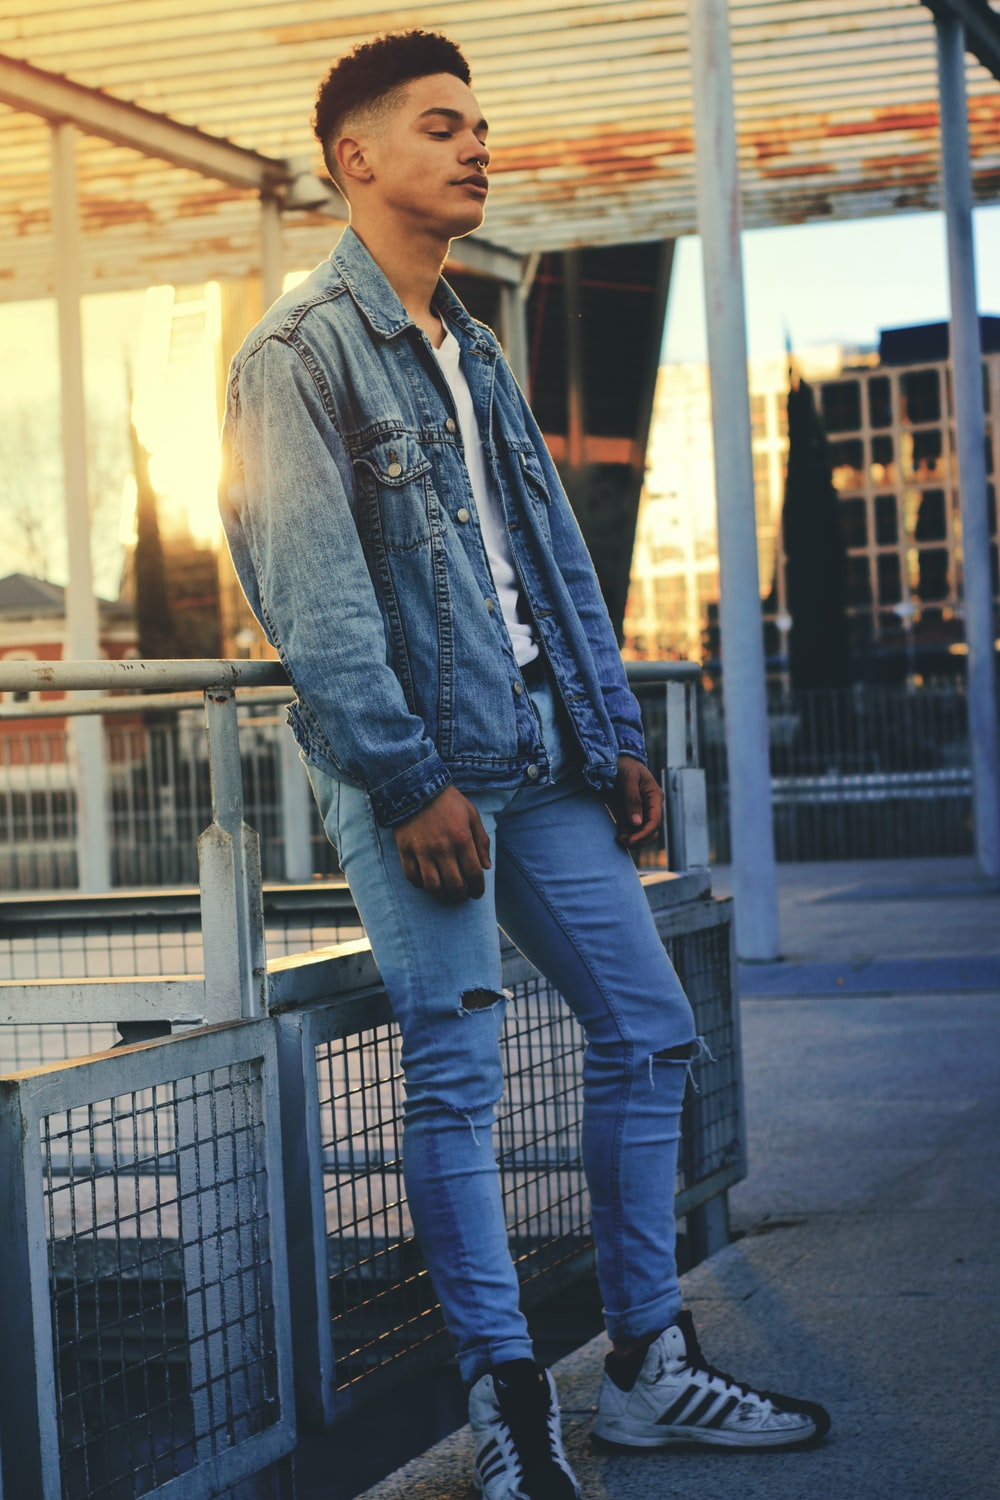 man in blue denim jacket leaning on safety hand rail